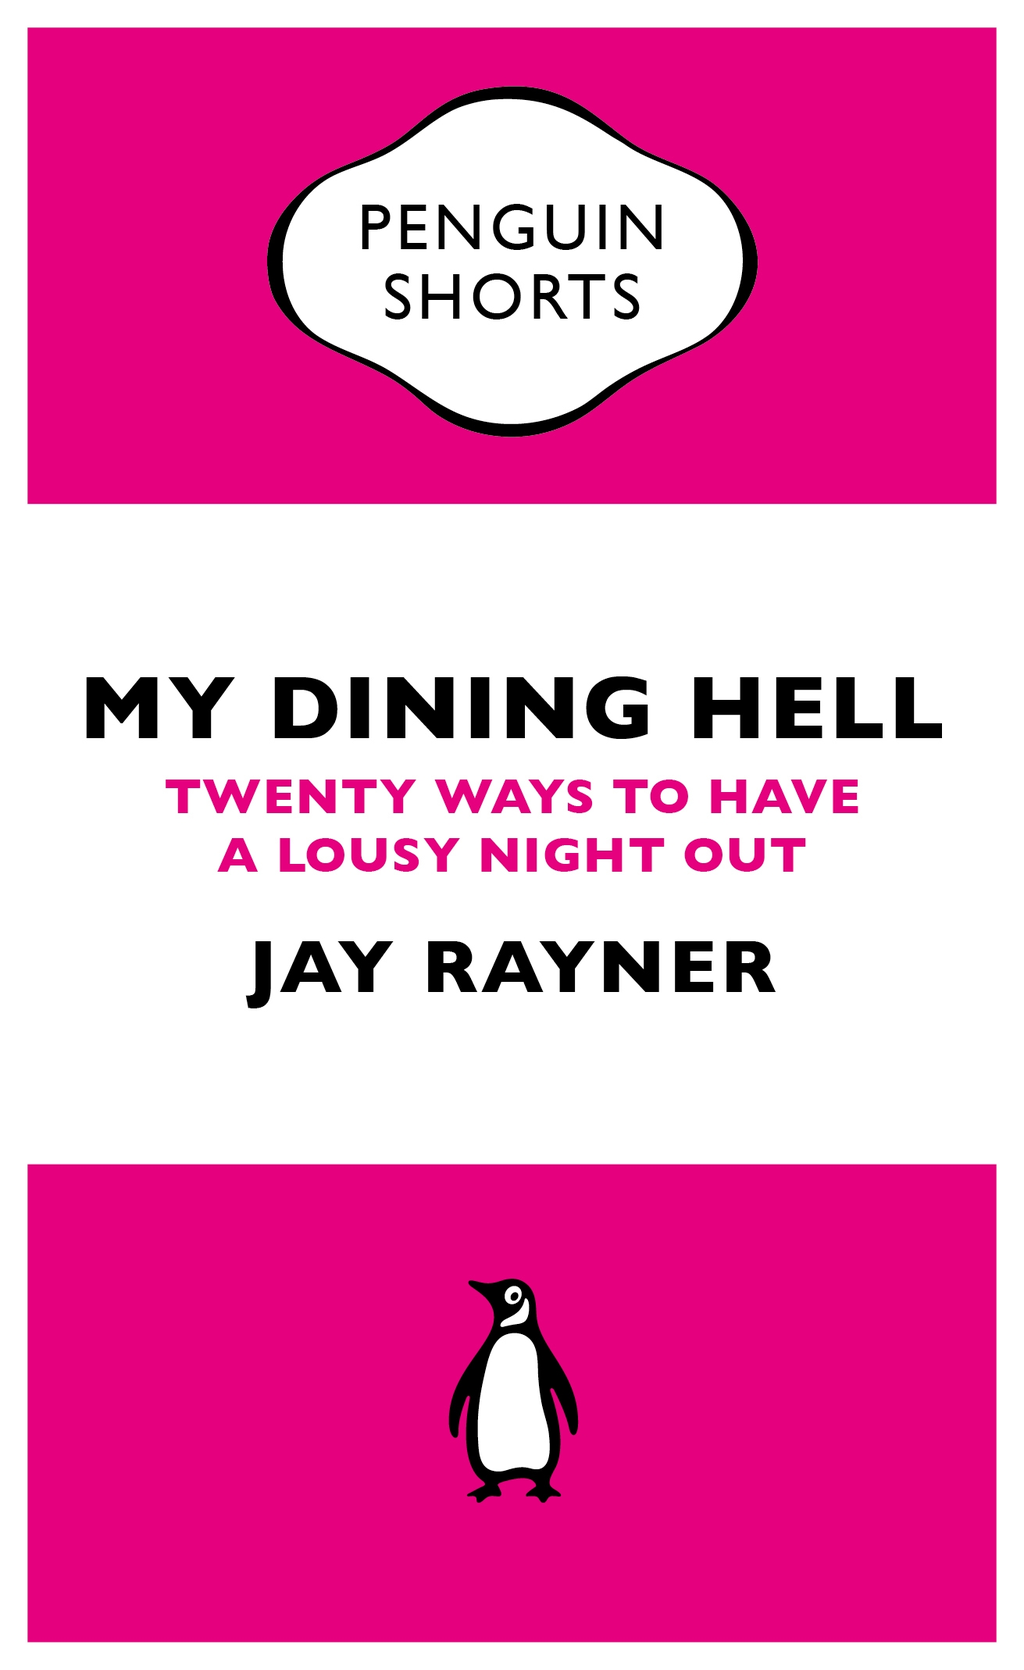 My Dining Hell (Penguin Specials) Twenty Ways To Have a Lousy Night Out